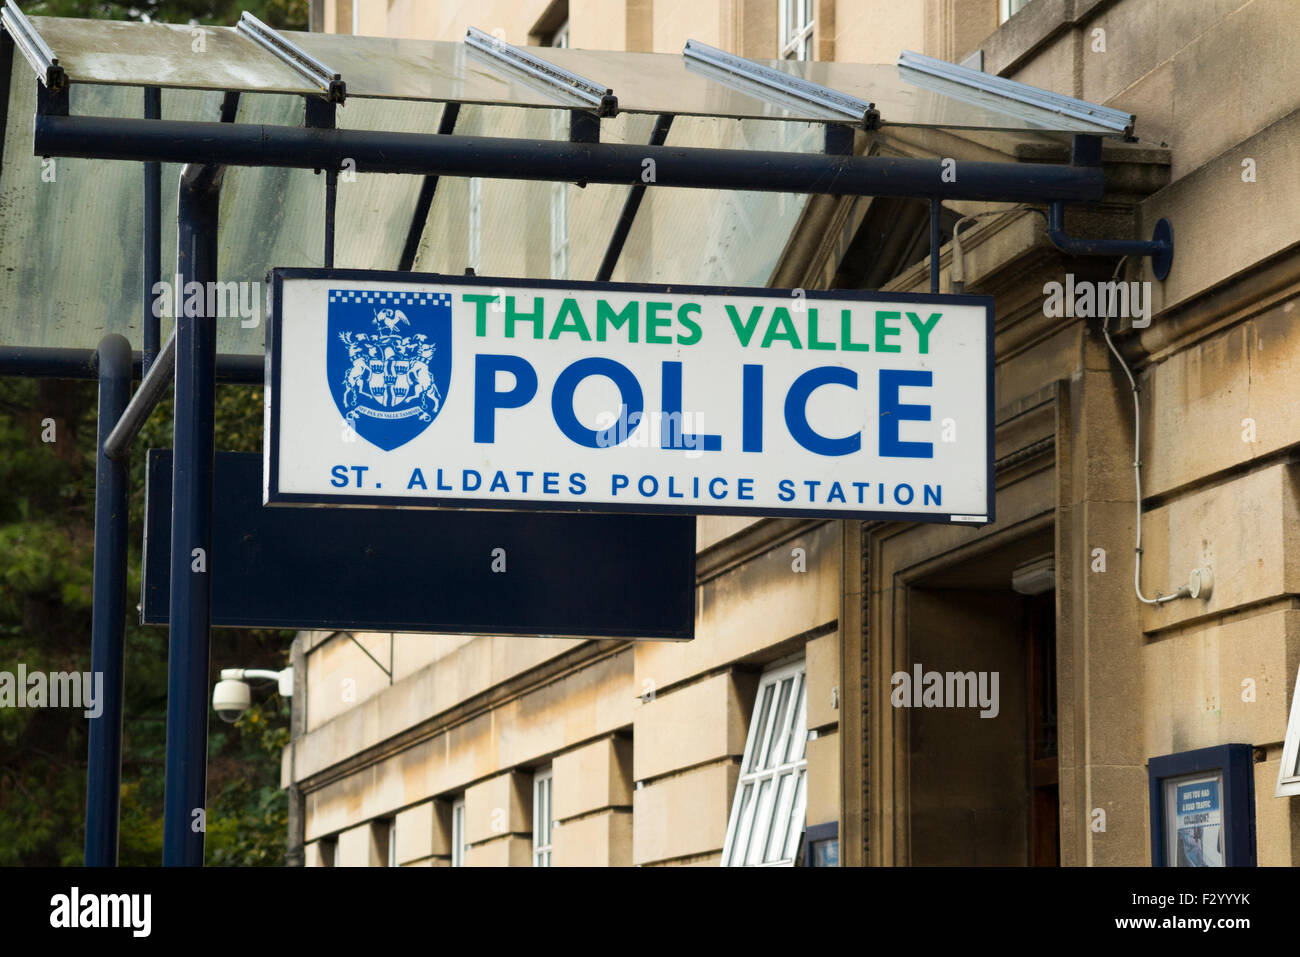 Thames Valley Police station sign / signs in Oxford. UK - Stock Image